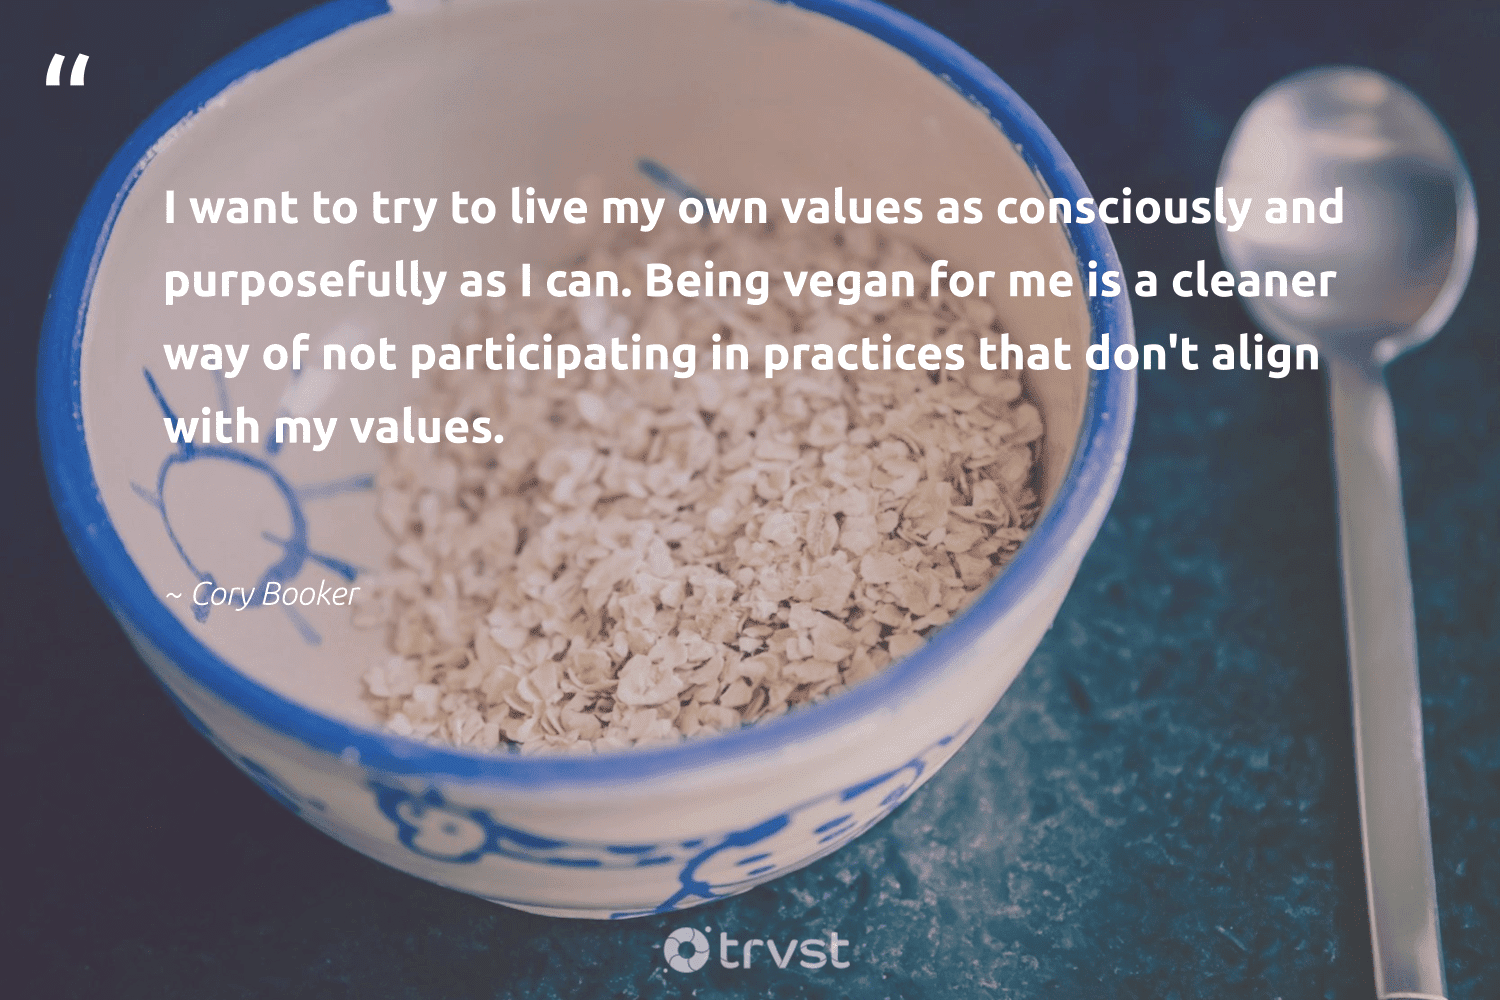 """""""I want to try to live my own values as consciously and purposefully as I can. Being vegan for me is a cleaner way of not participating in practices that don't align with my values.""""  - Cory Booker #trvst #quotes #vegan #veganfoodshare #greenliving #bethechange #ecoconscious #veggie #fashion #green #gogreen #veganlife"""